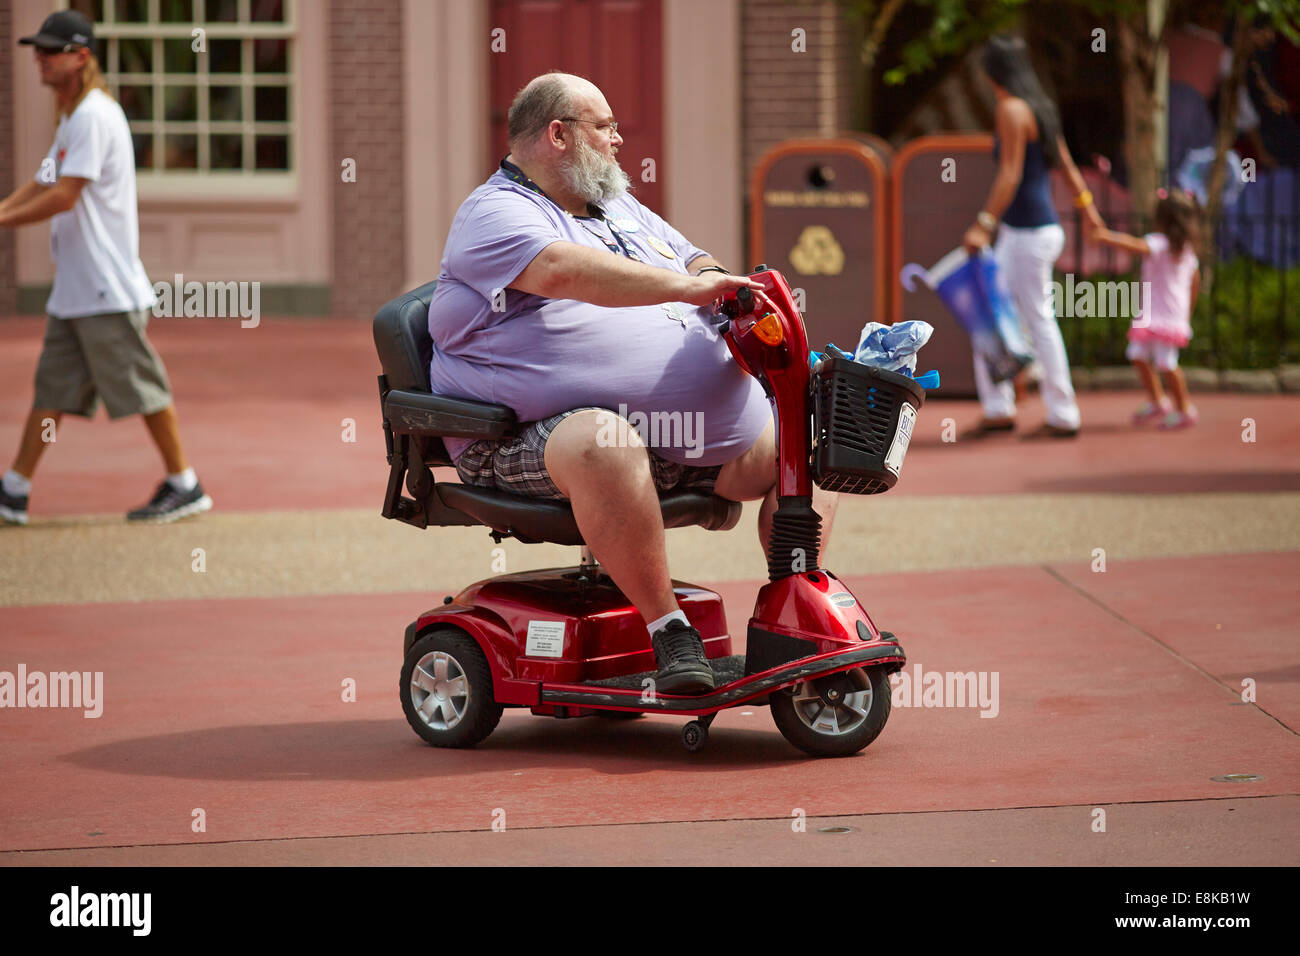 Florida Usa Disneyland Fat Person On A Mobility Scooter